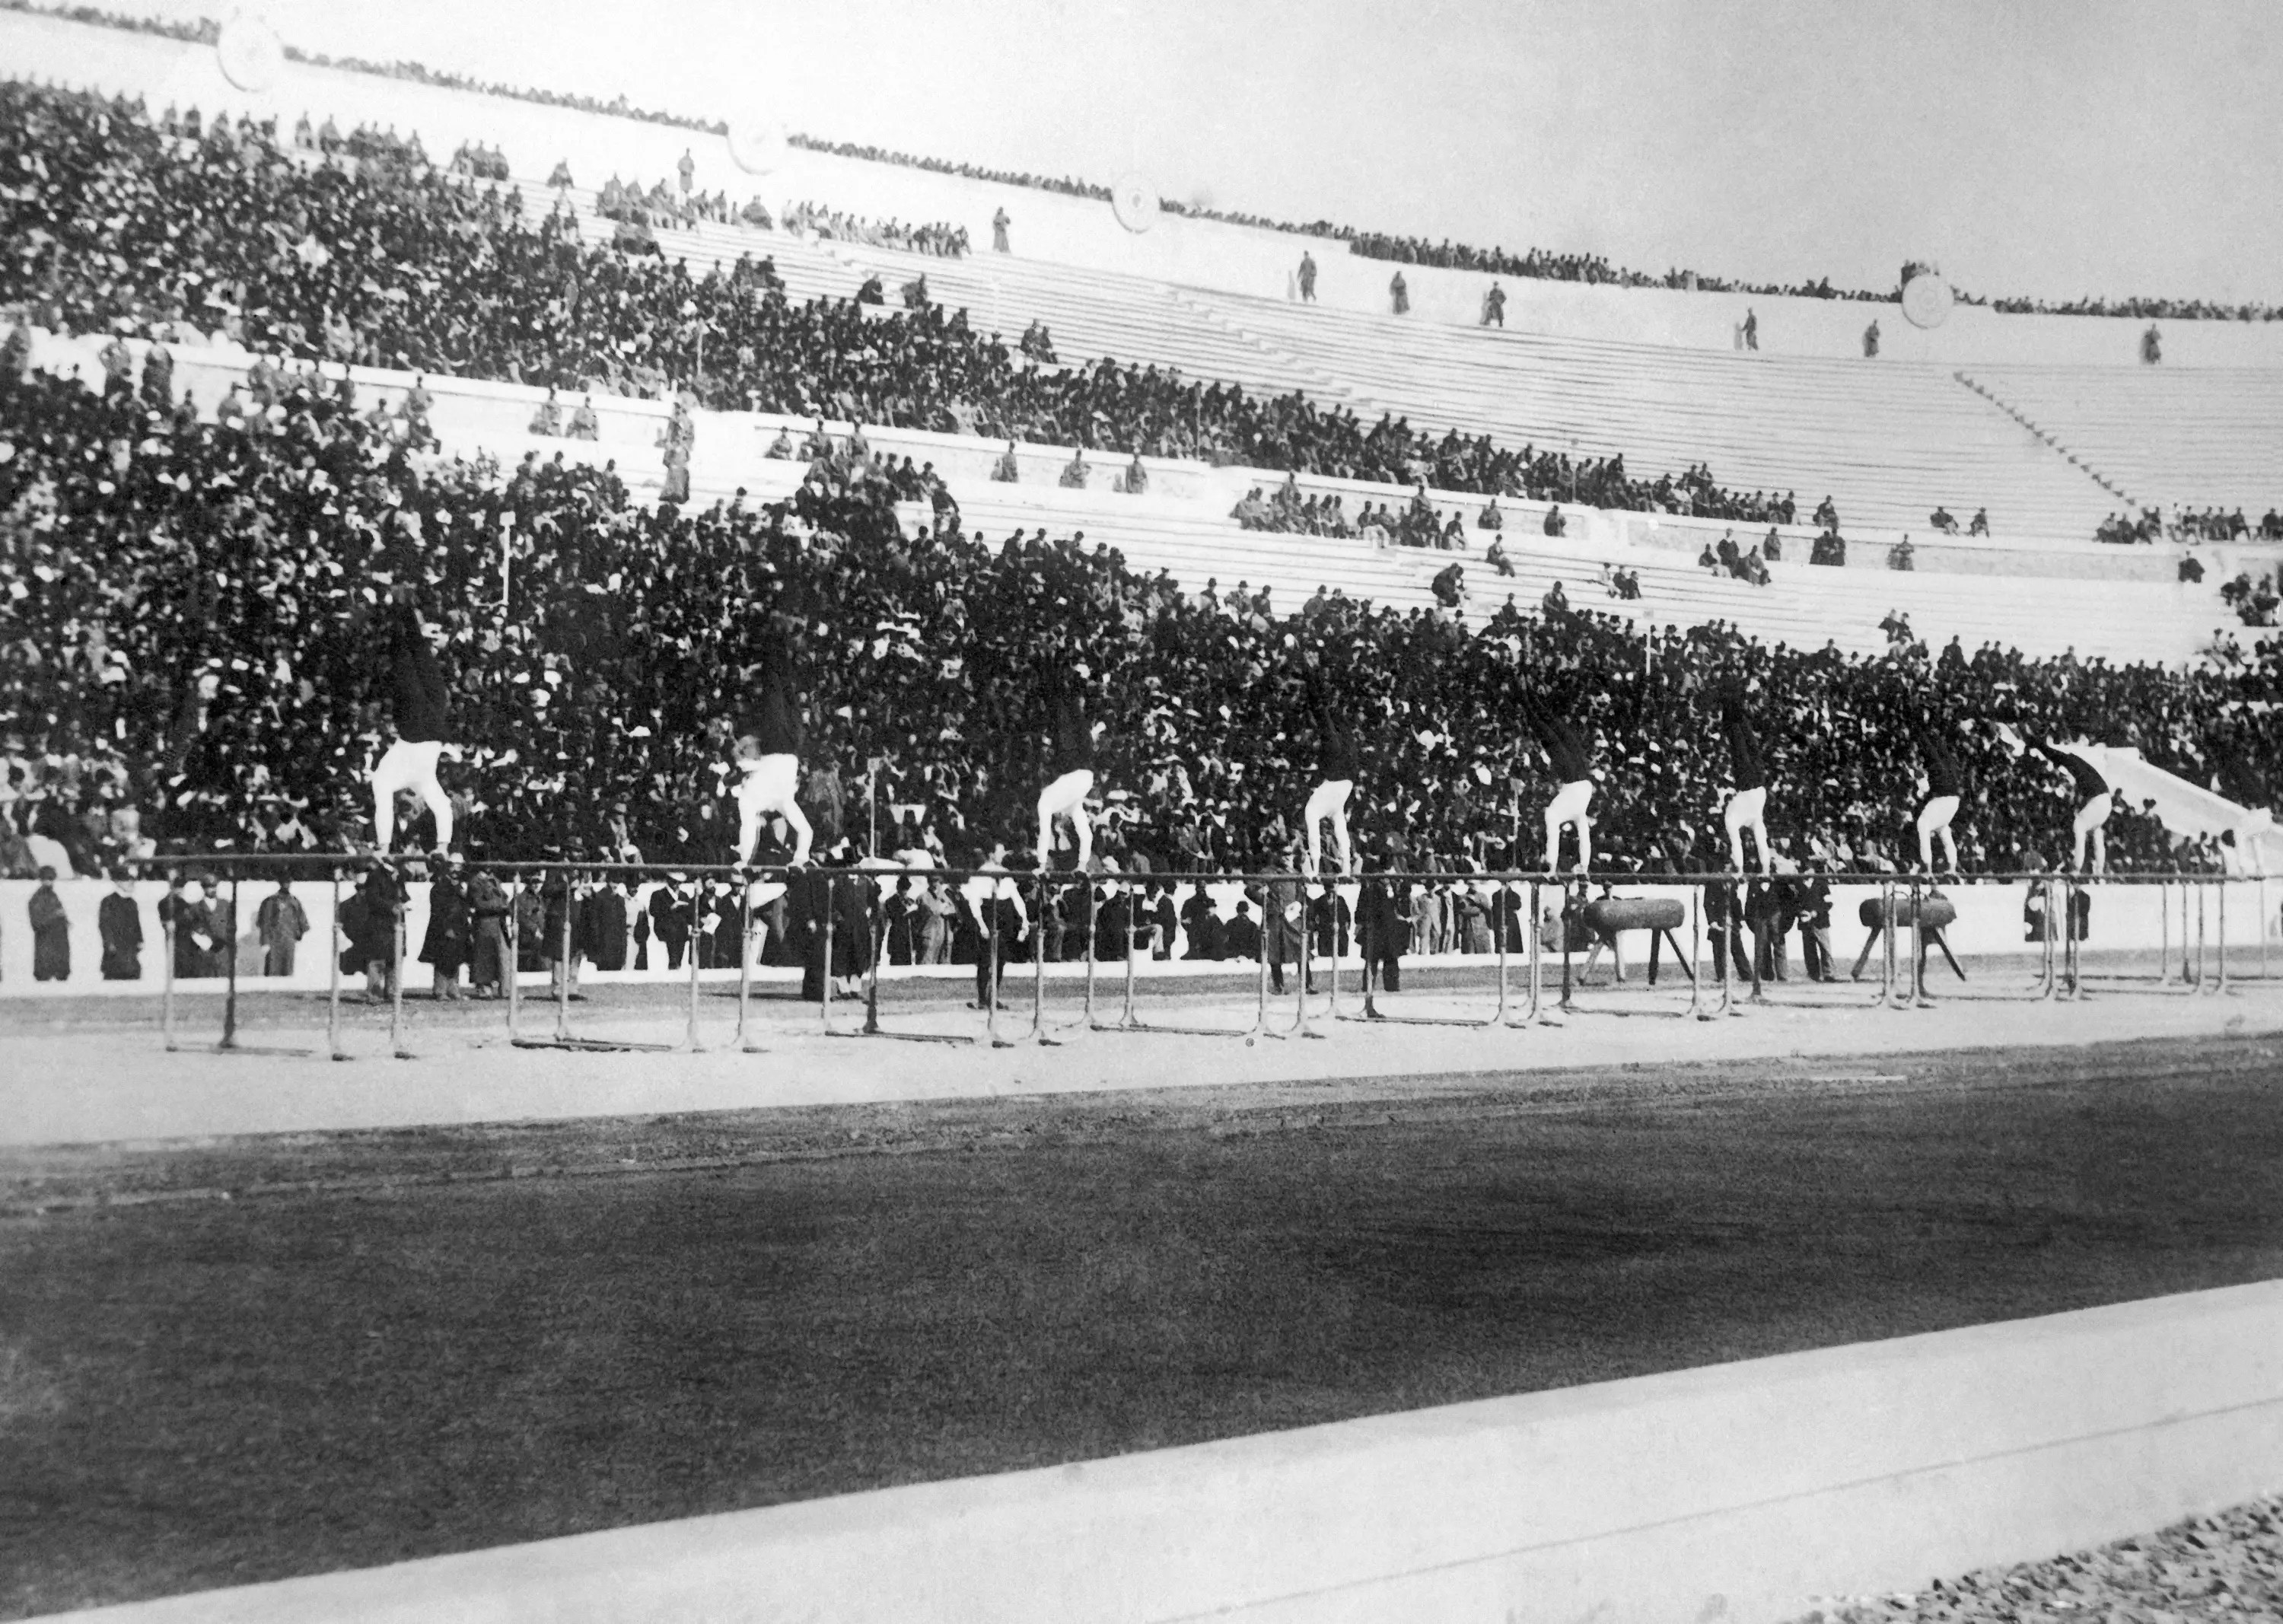 Athens, 1896: The 1896 games were the first international Olympic Games held in the modern era. They brought together the largest international participation of any event to that date, and the stadium sold out to massive crowds. In this image, members of the winning German gymnastics team show their routine on the parallel bars in front of spectators.